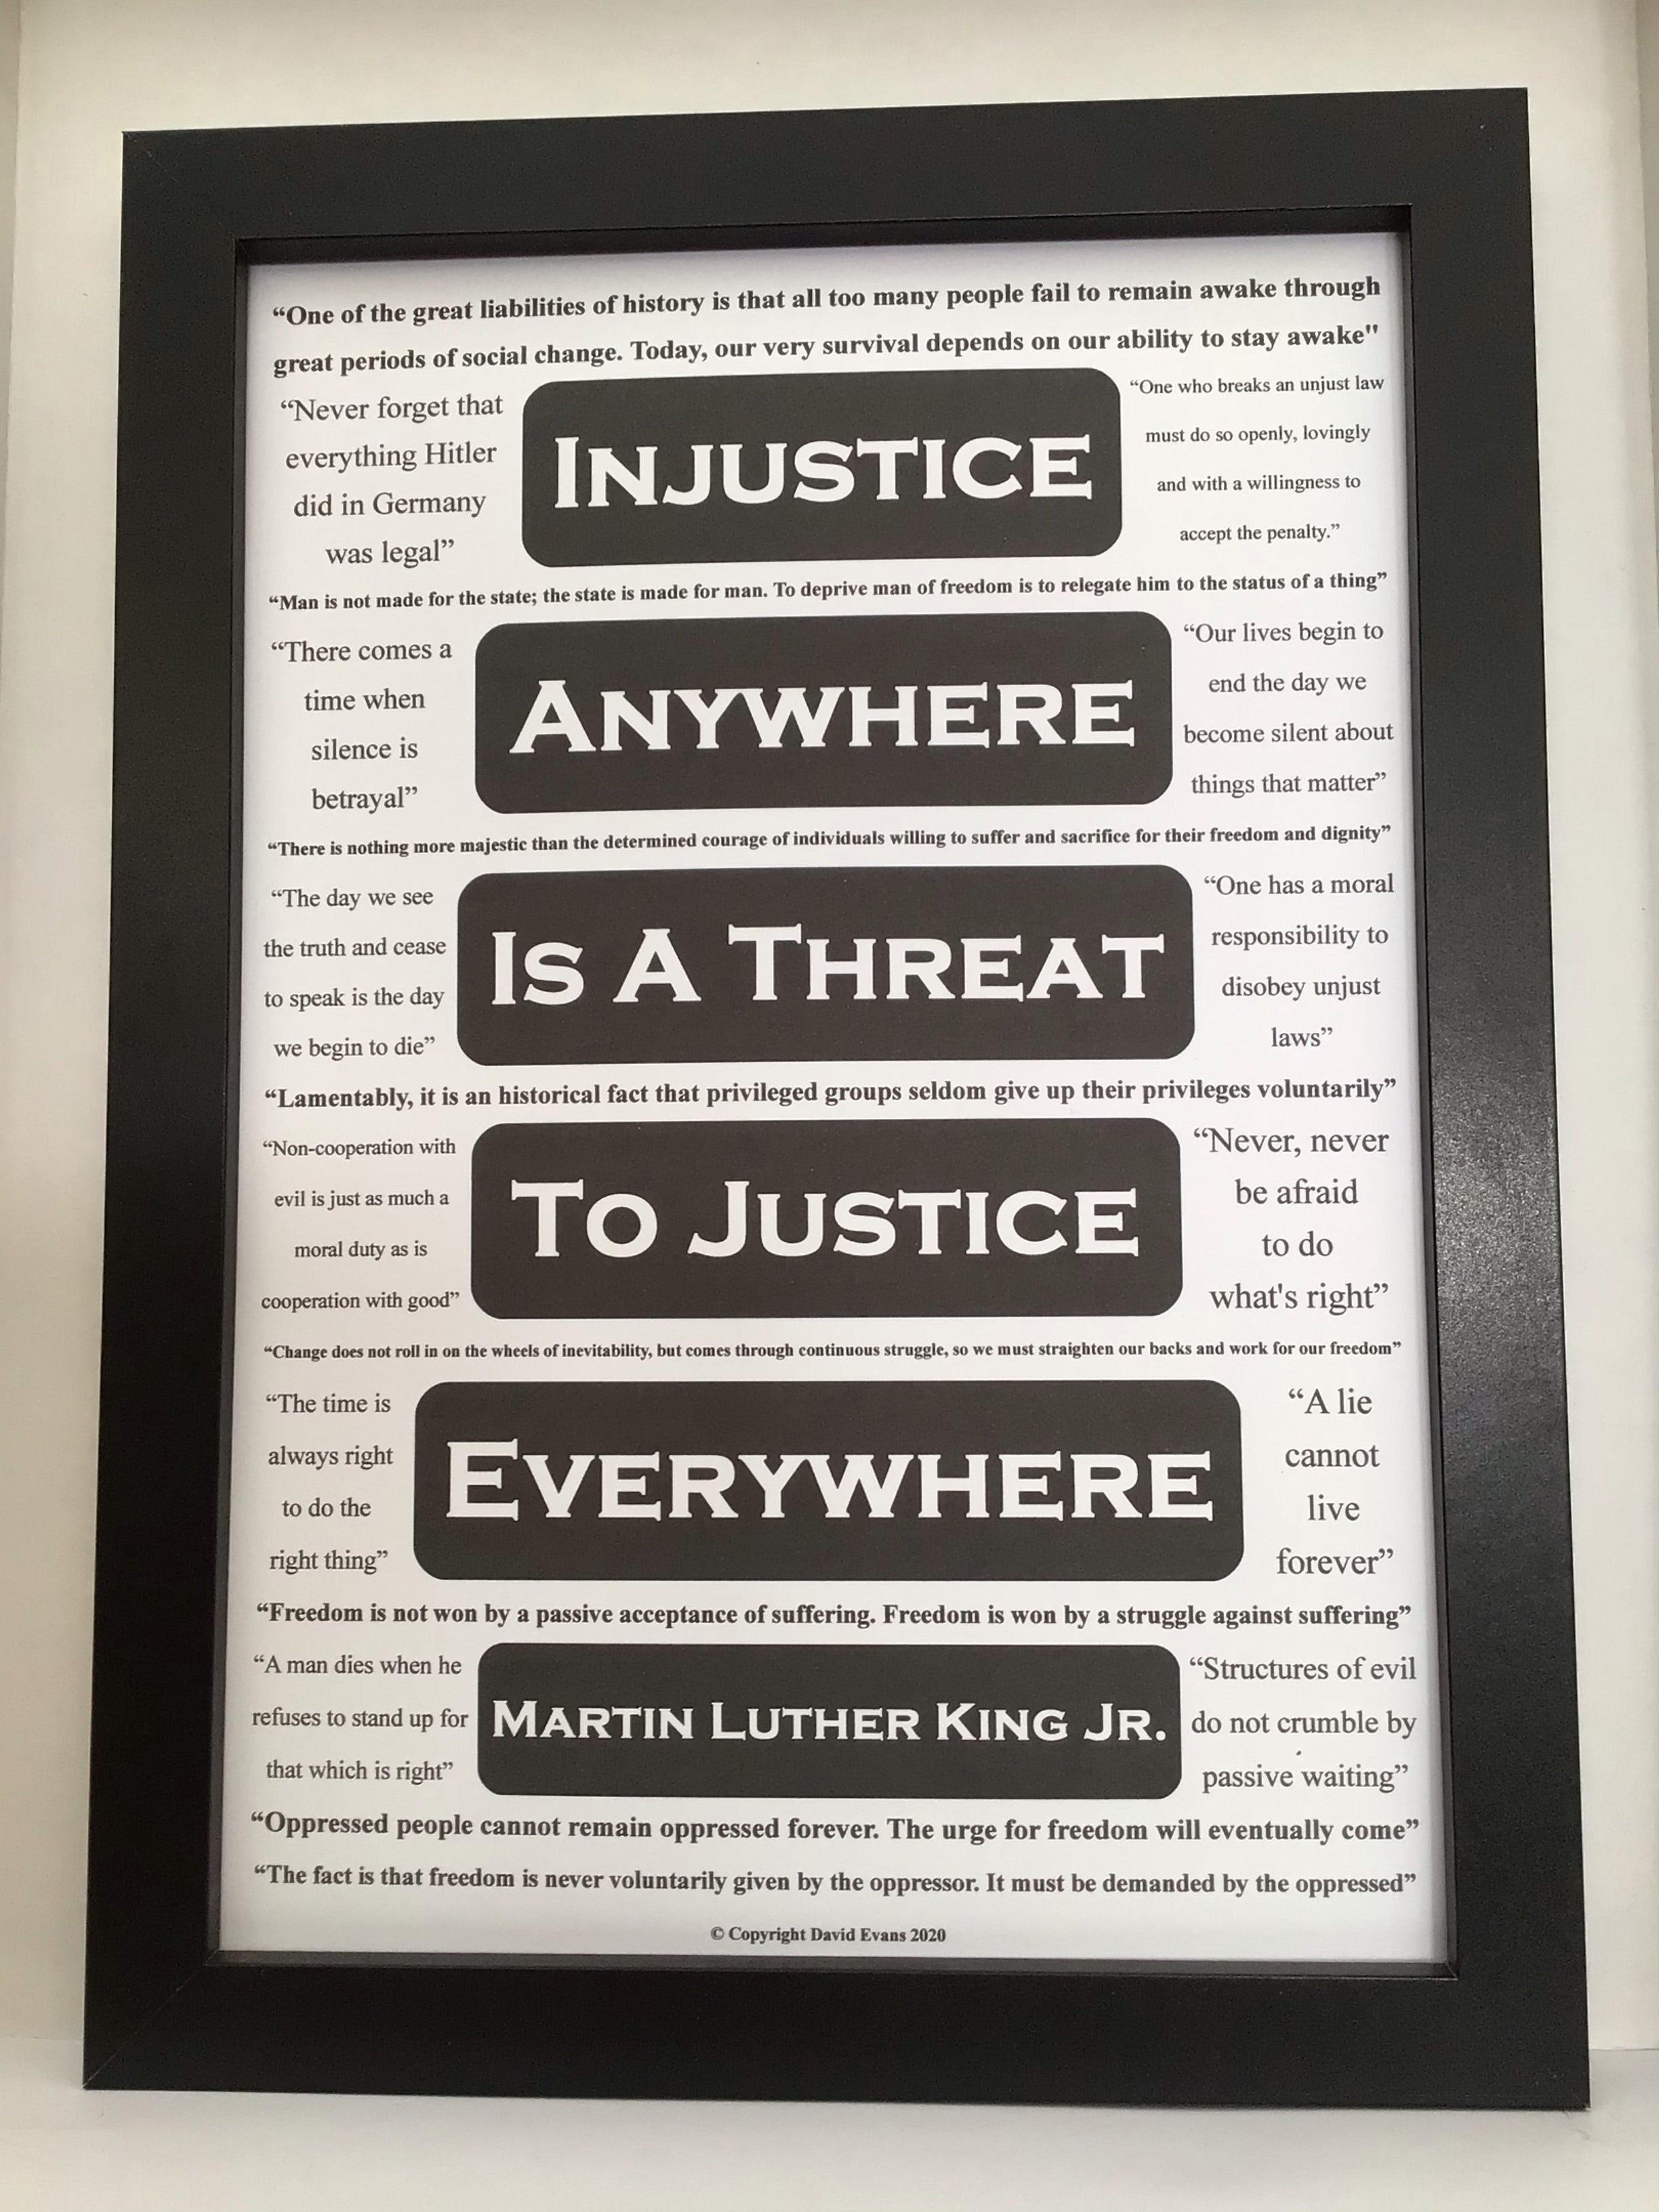 Inspirational poster featuring 21 relevant Martin Luther King quotes about justice and freedom